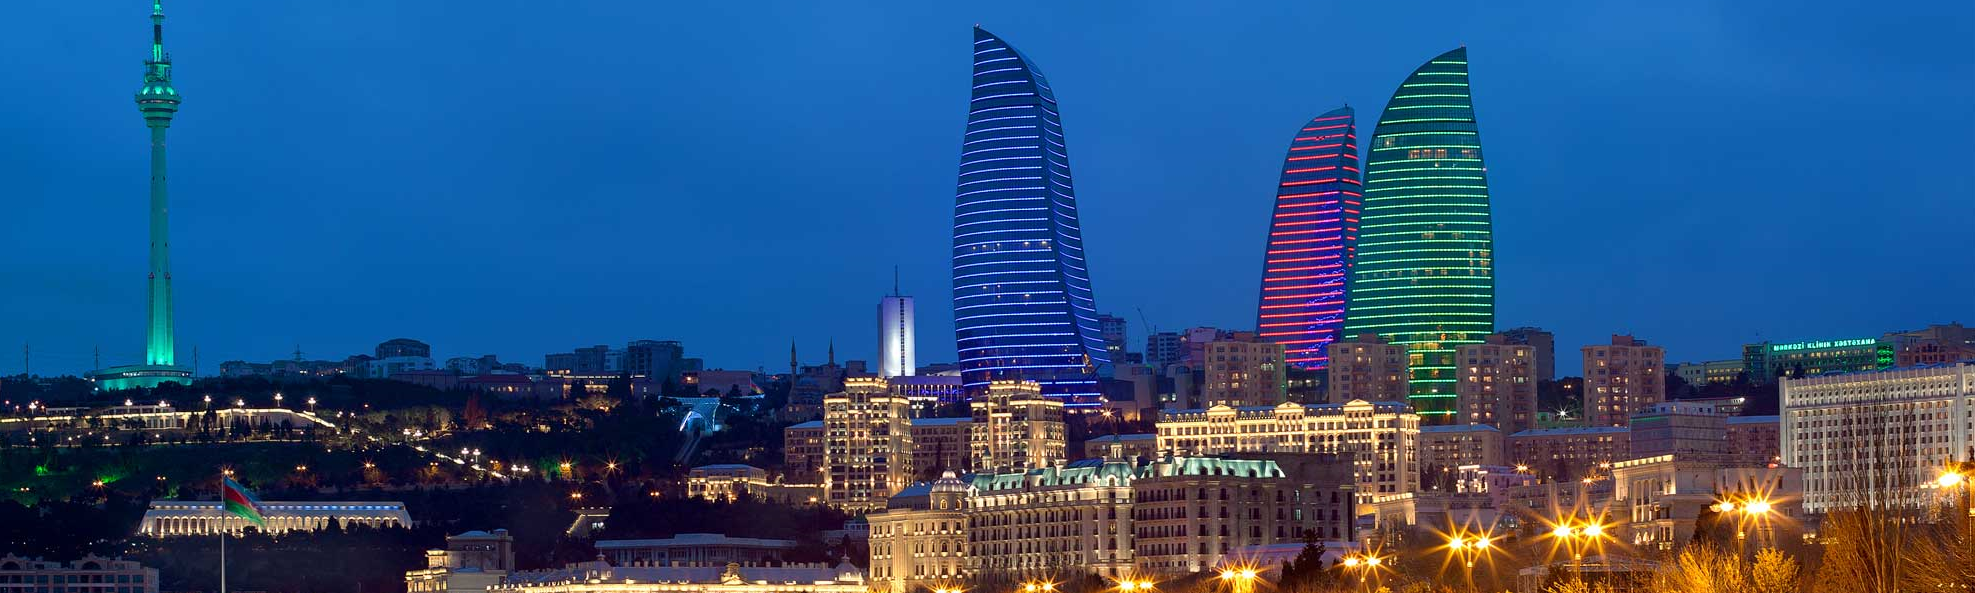 "Formula 1 racing will debut a new street circuit this weekend as they visit Azerbaijan for the first time. Formula 1 circuit designer Hermann Tilke claims that his latest creation located in the capital city of Baku will be the fastest city track in the world. Tilke anticipates that track times under normal racing conditions around the 3.732-mile track to be around 1m41s. ""It stands out due to many factors. It will be the world's fastest city circuit. The streets are really narrow and this is exactly what makes it so appealing,"" said Tilke."